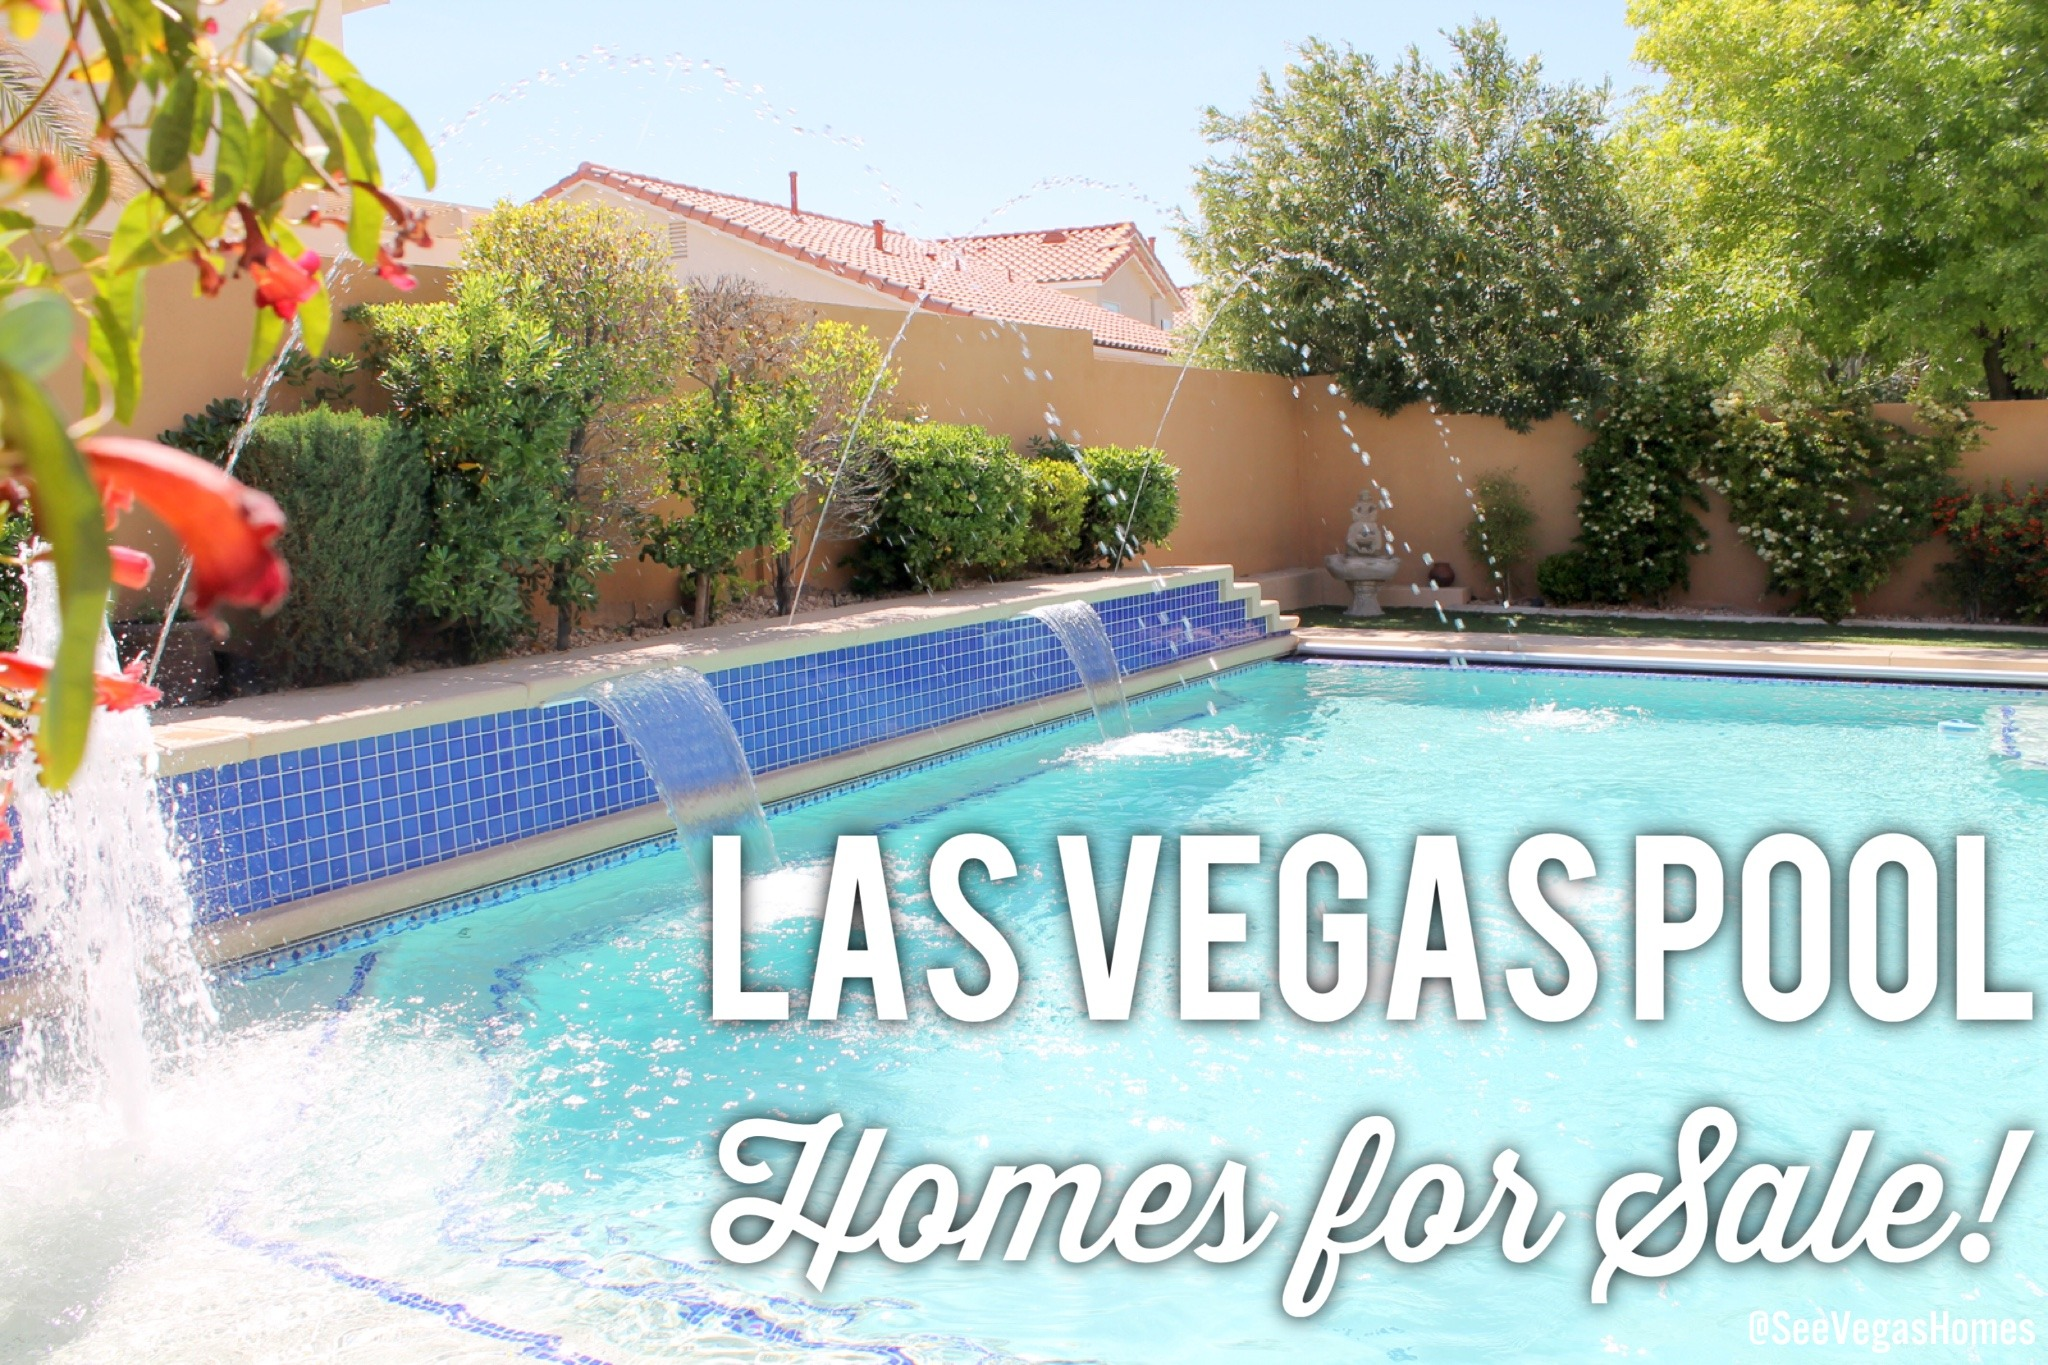 las vegas pool homes for sale